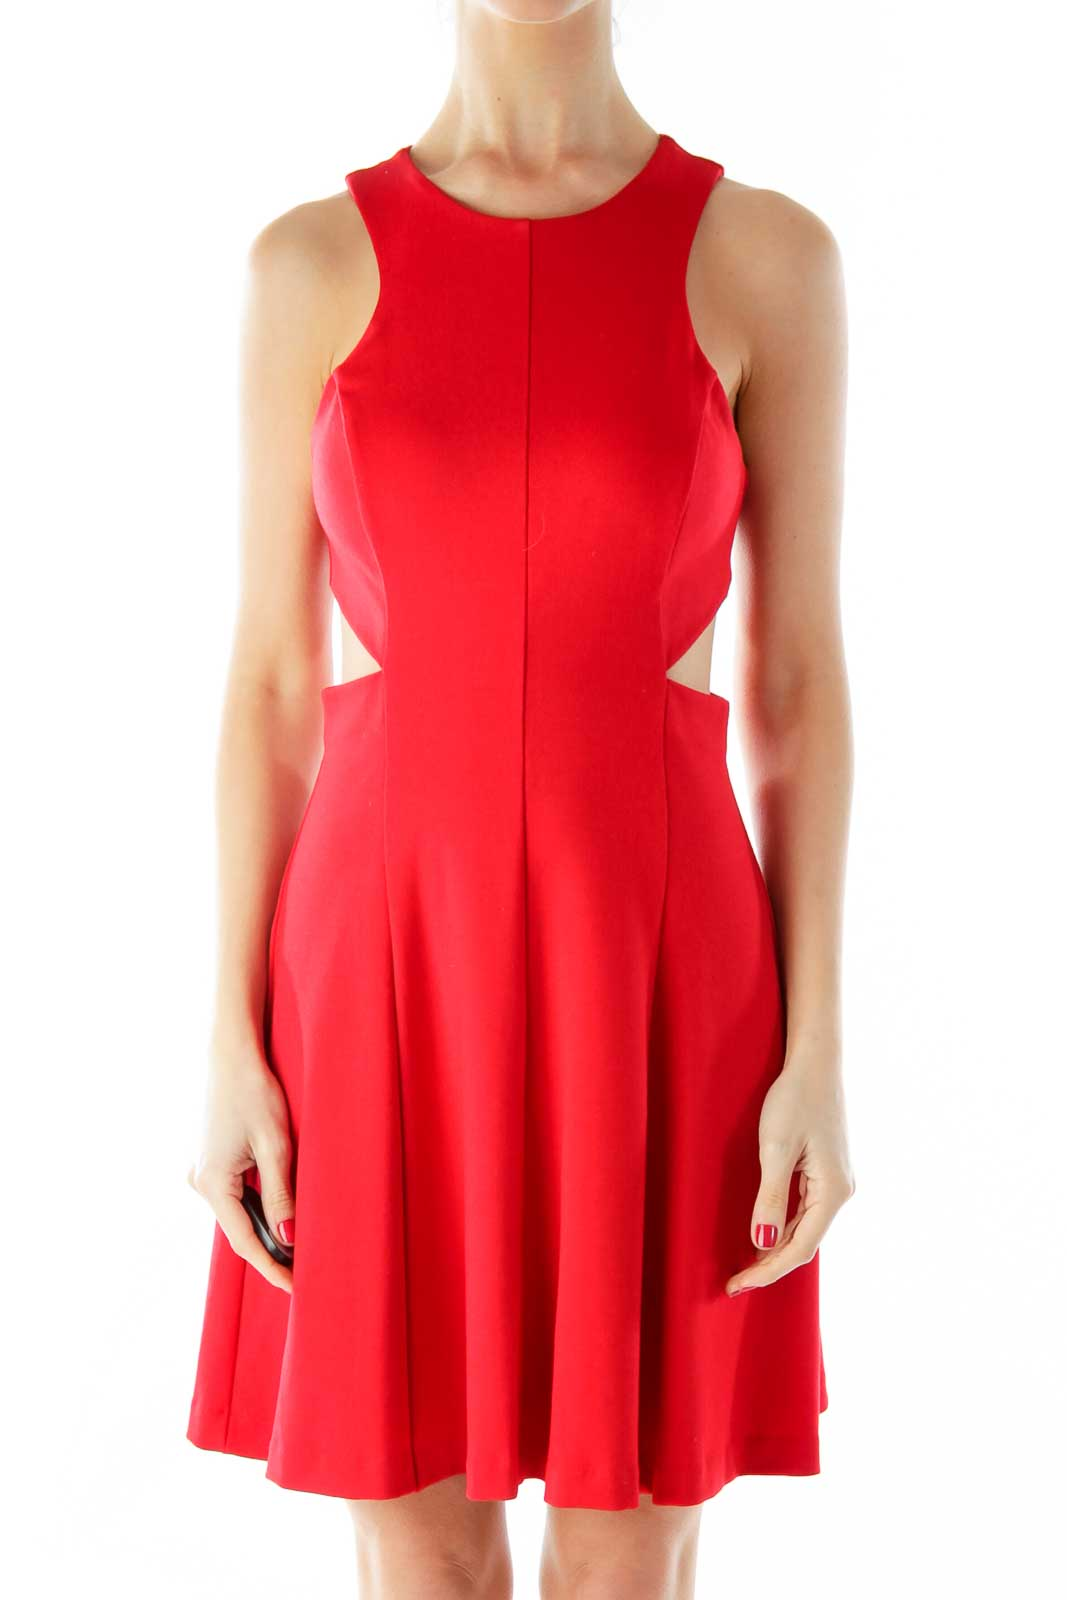 Red A-Line Cut-Out Dress